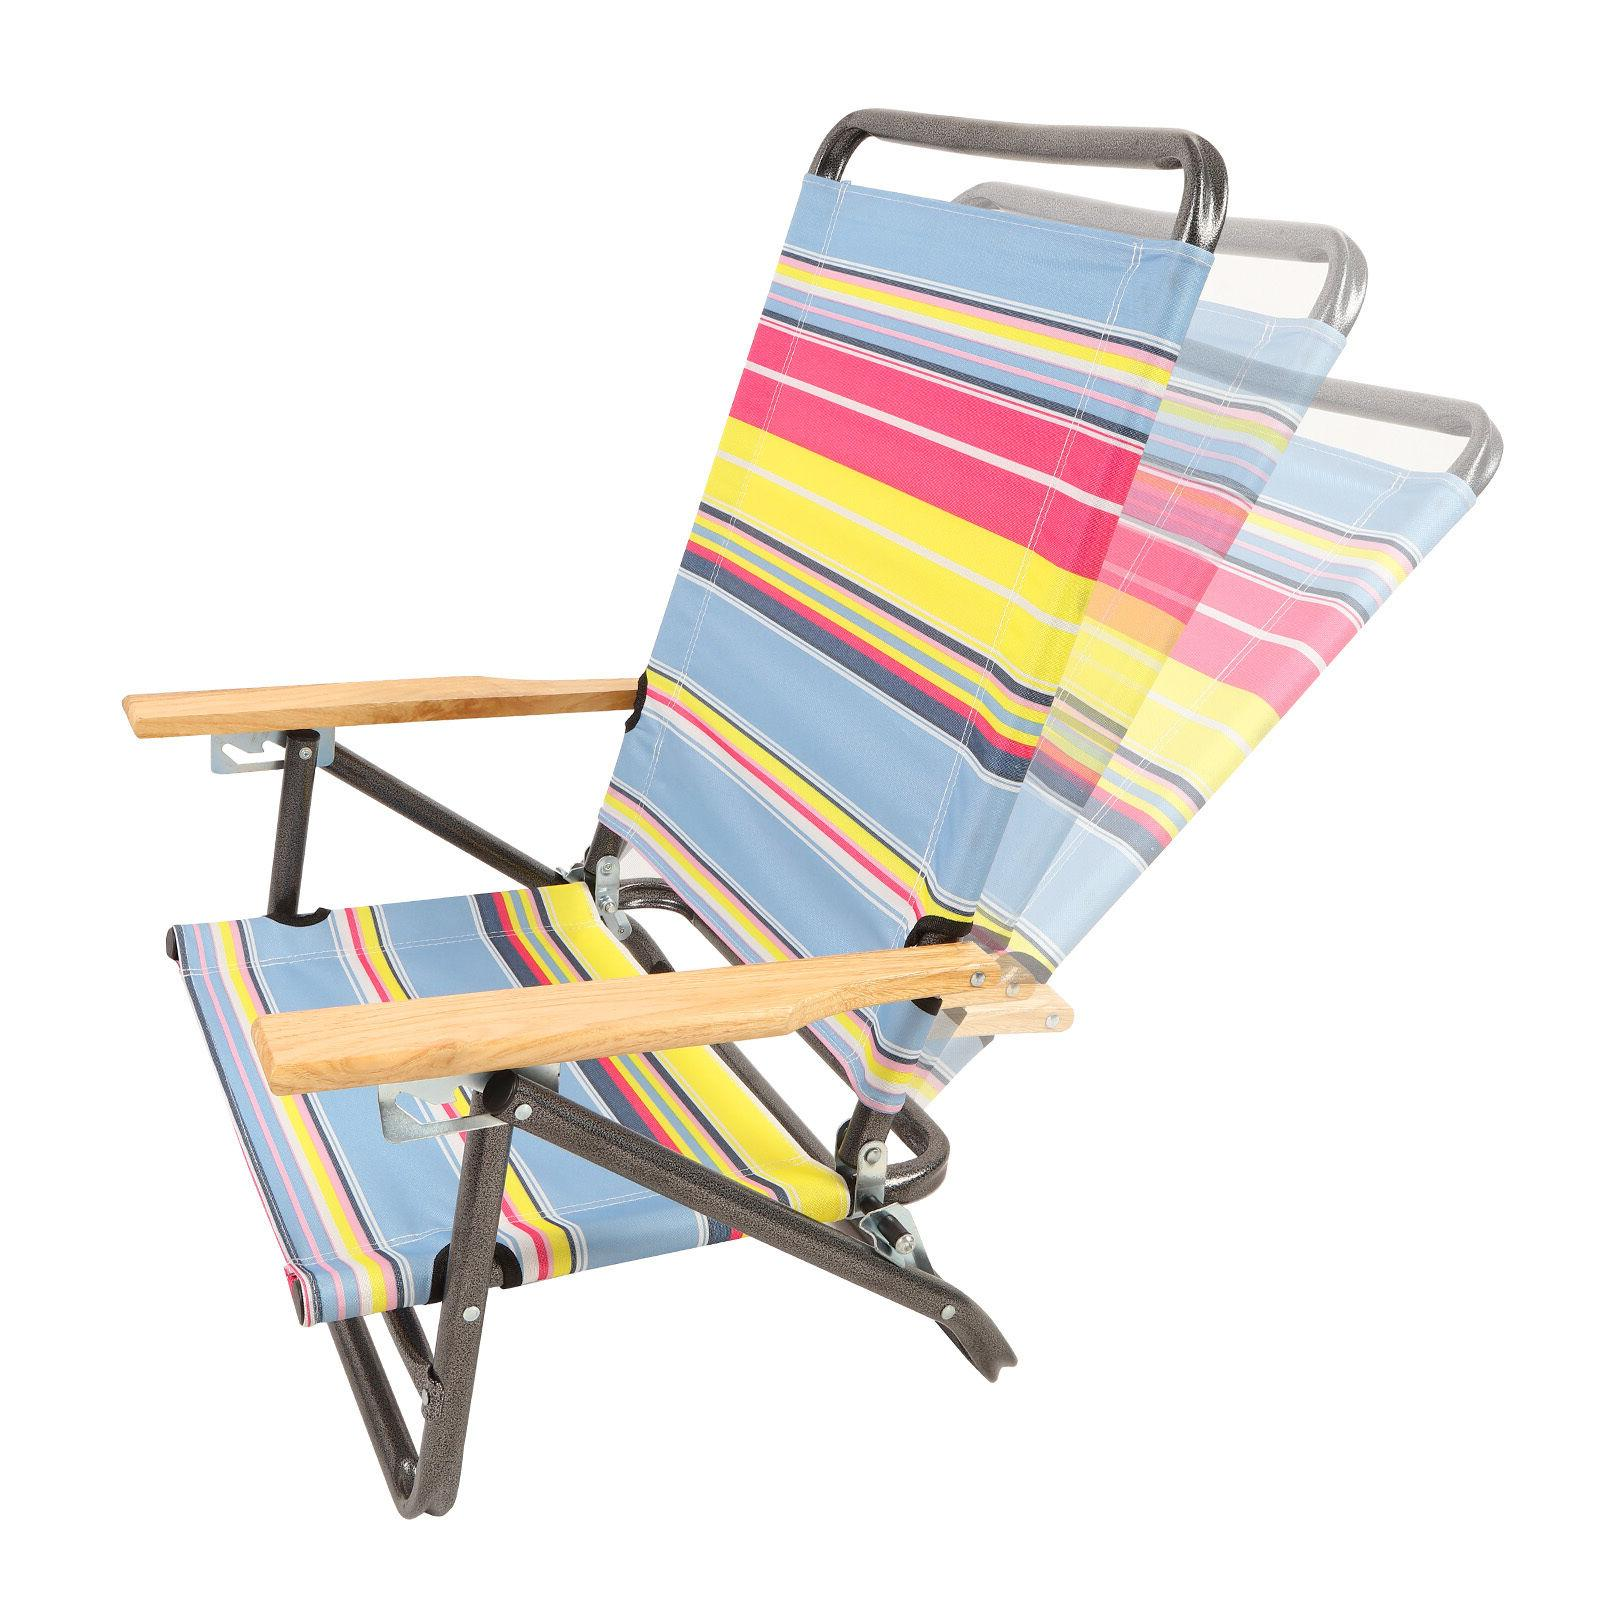 x2 Folding Beach Chair Camping Chair Portable 3-Position